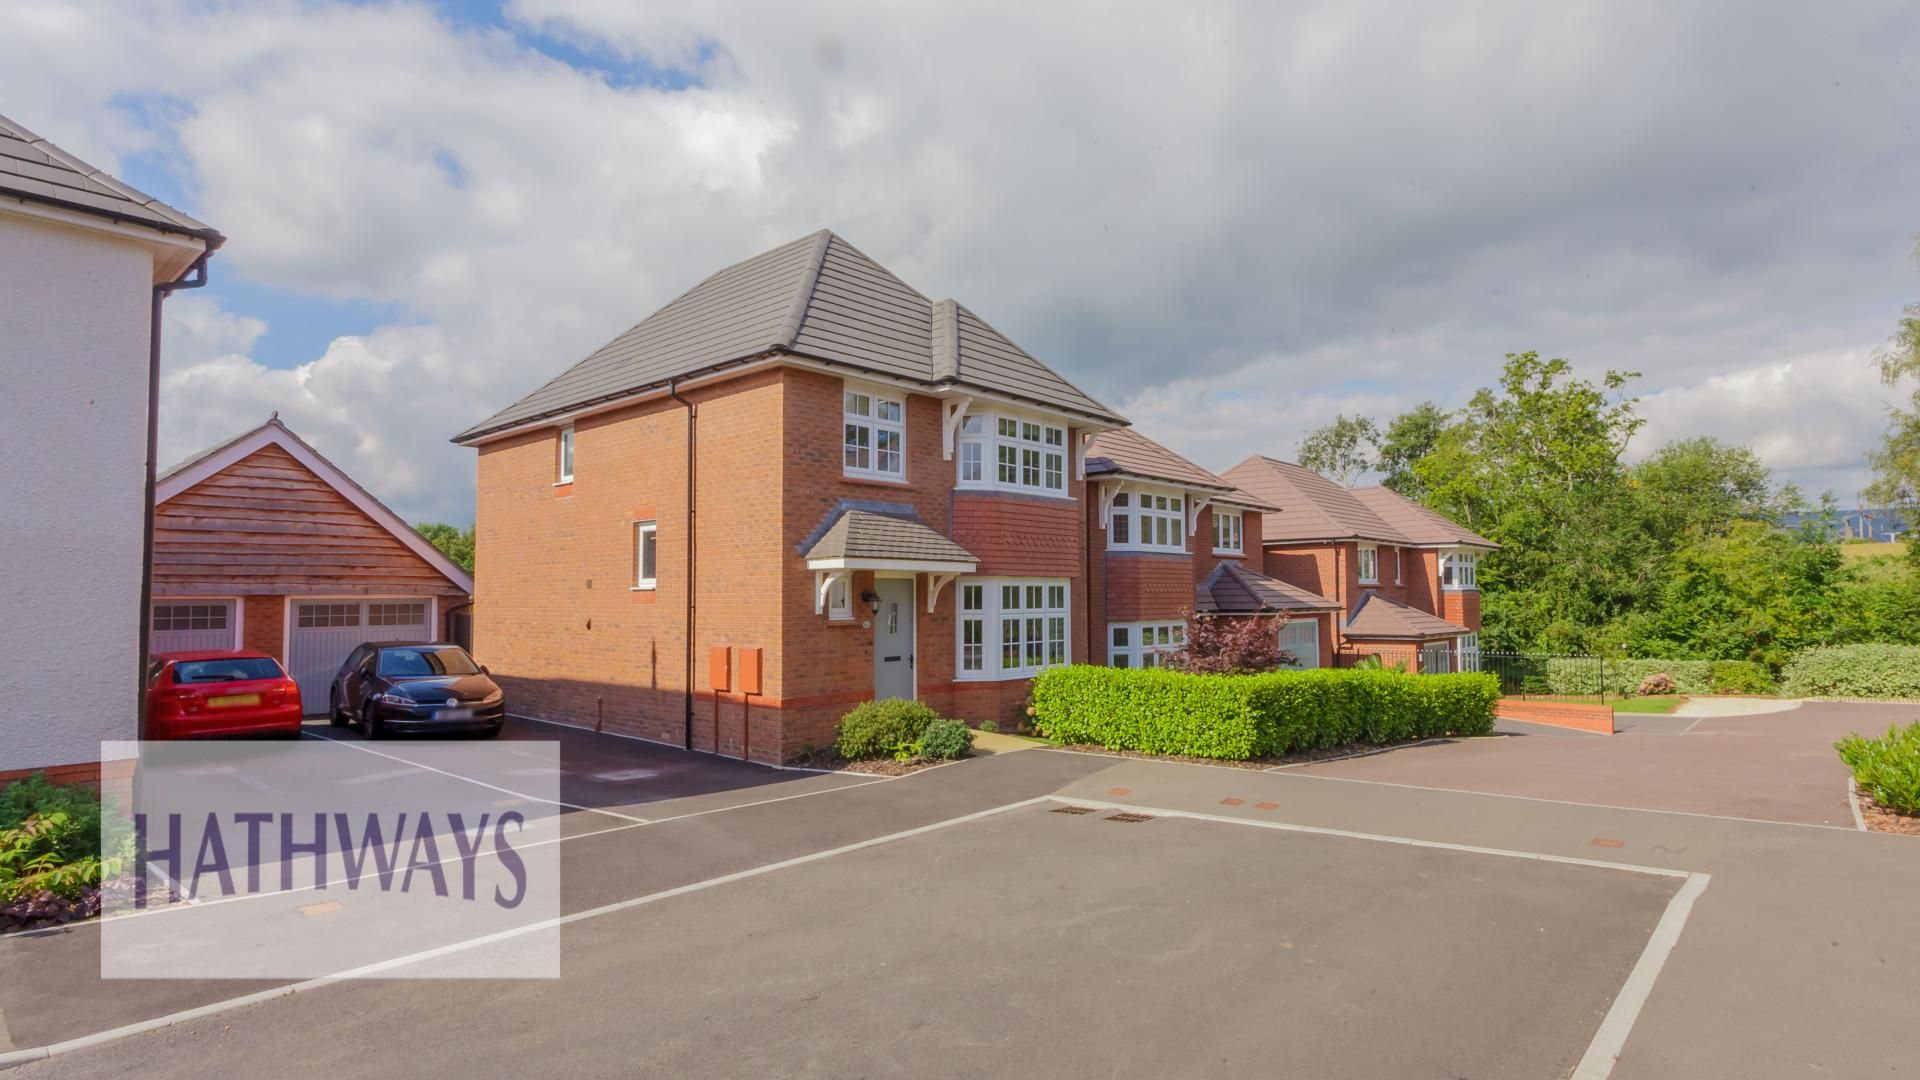 4 bed house for sale in The Maltings, NP44